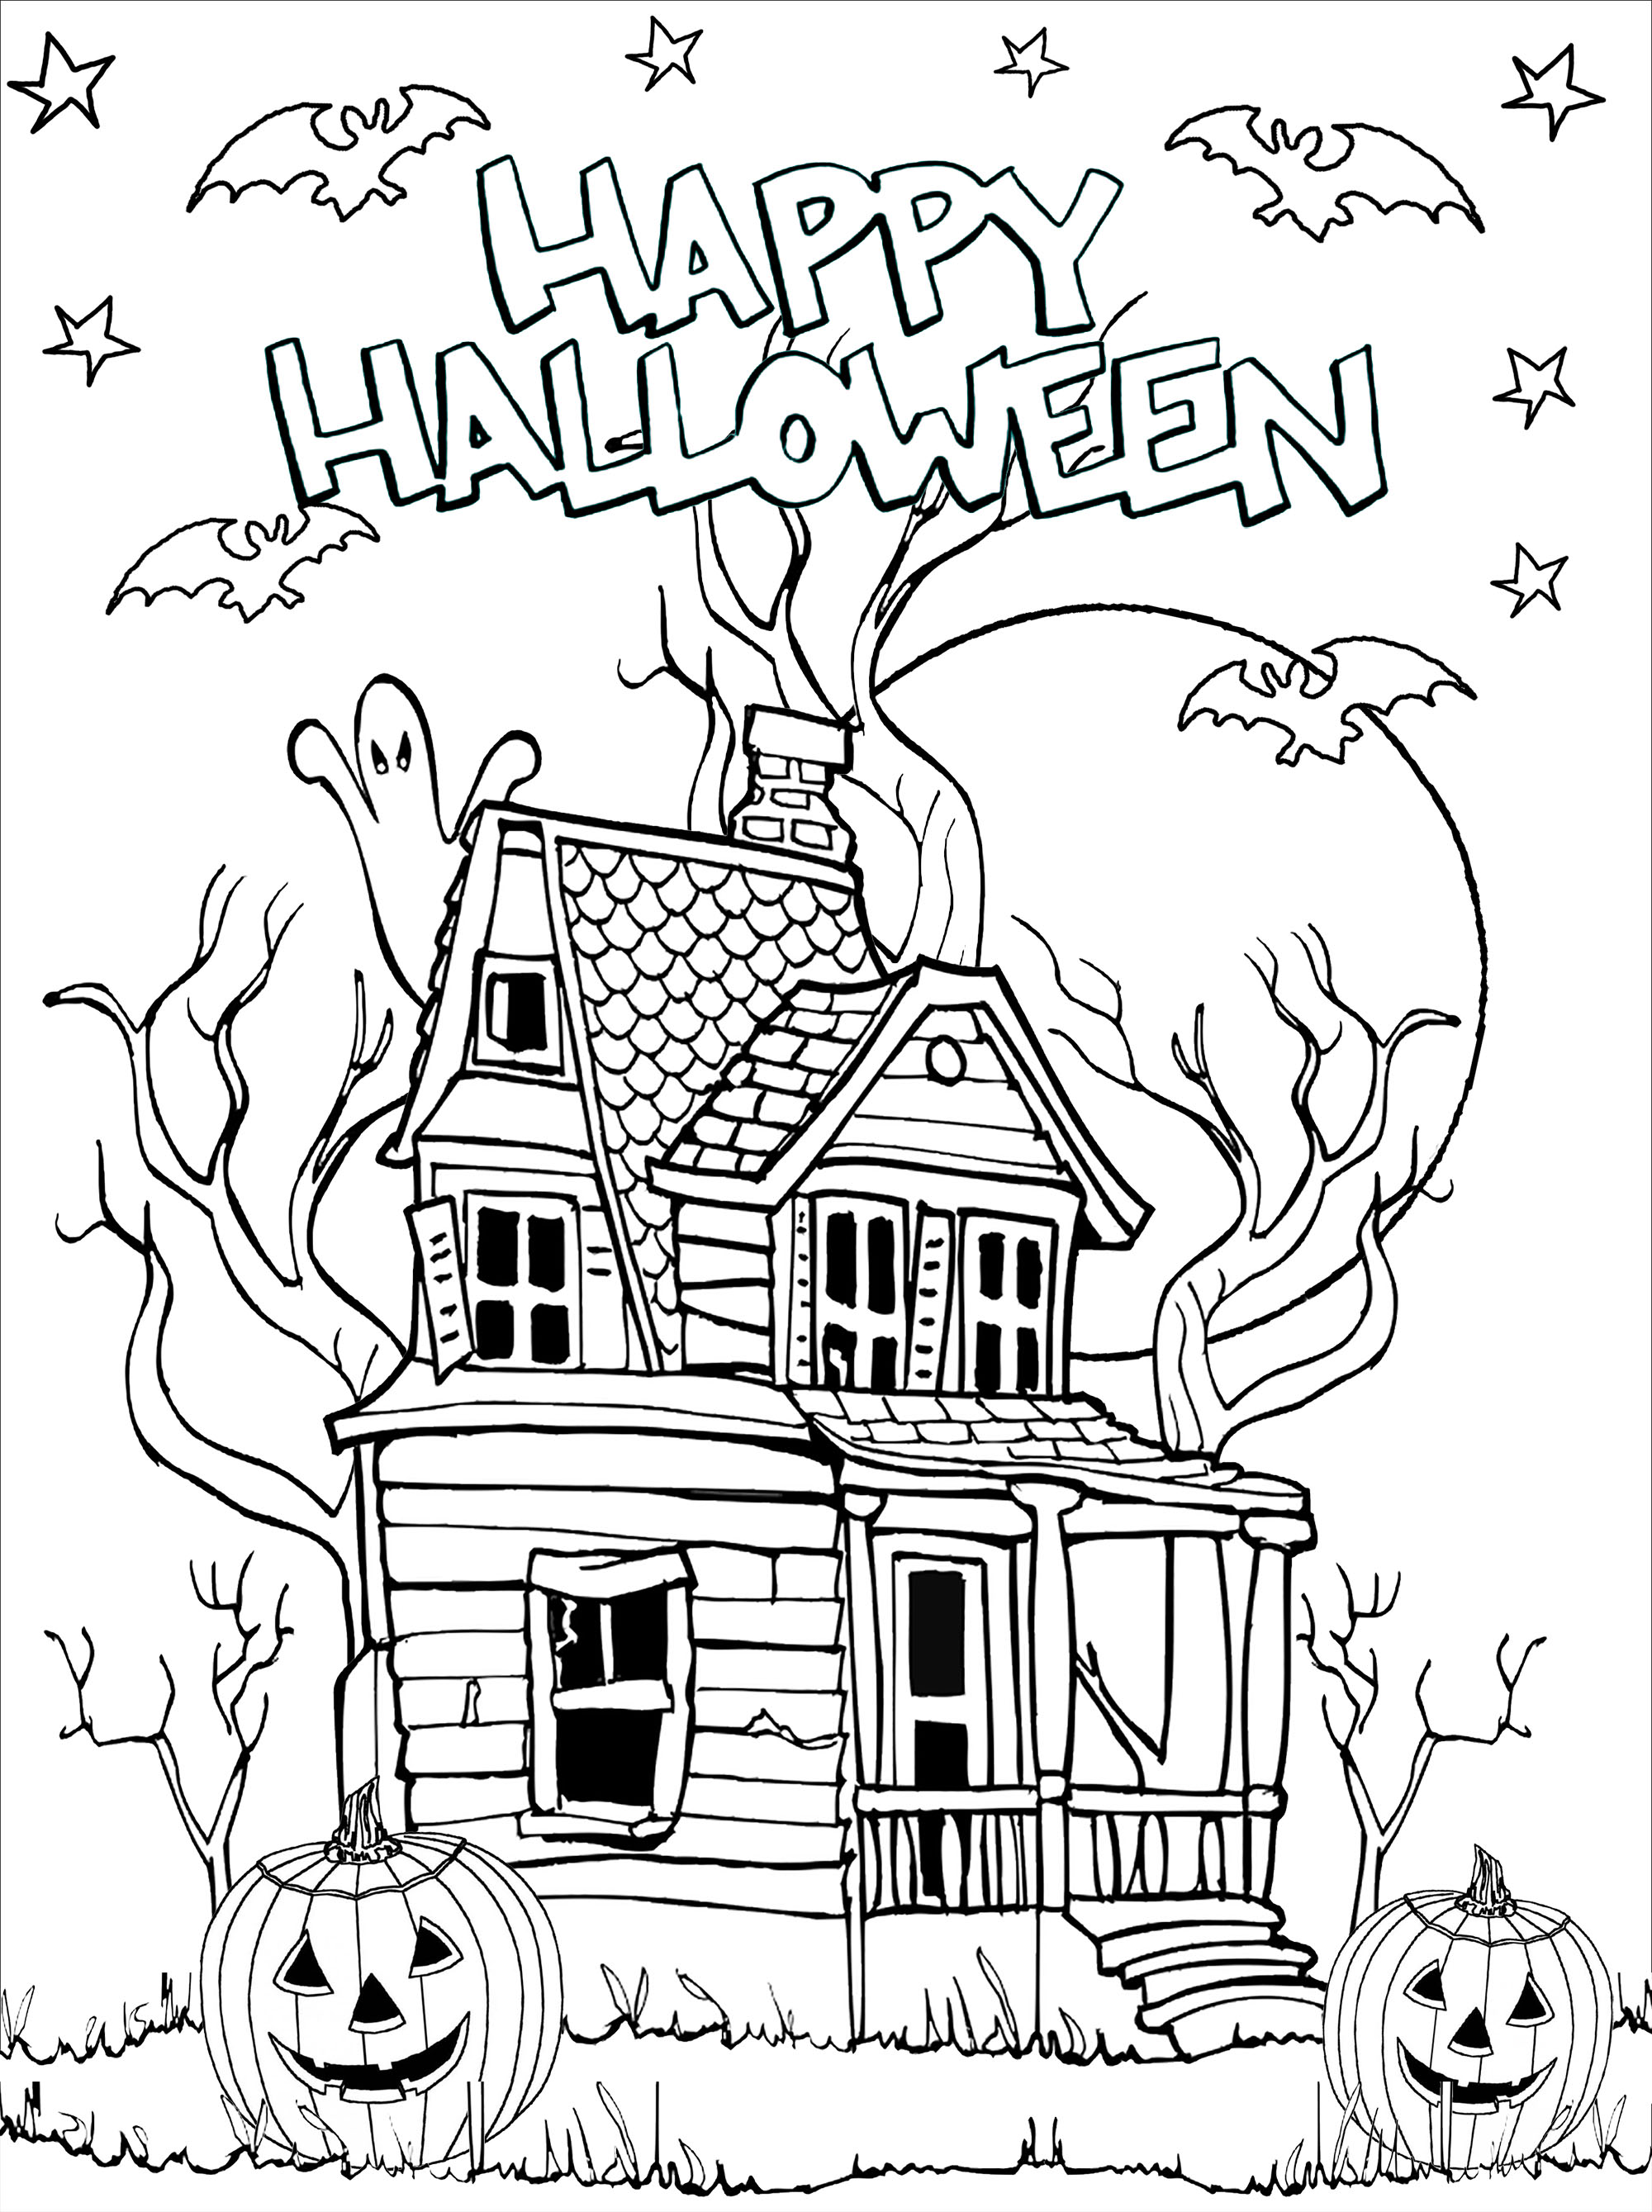 Haunted house to print and color with pumpkins (Jack-o'-lantern), dead trees, bats, moon and stars